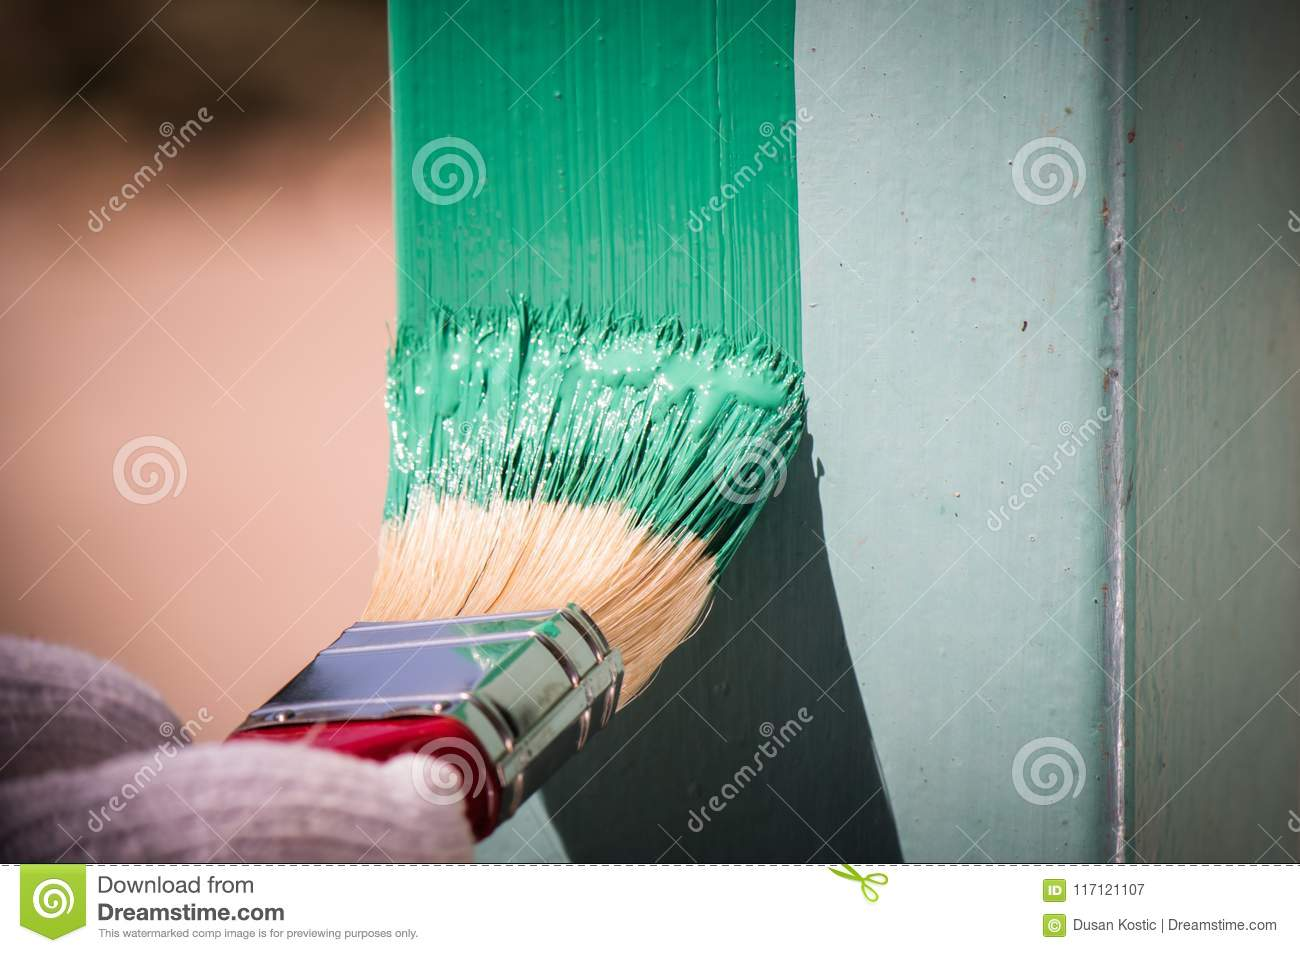 Painting Metal Surface With A Brush Stock Image - Image of renovate ...